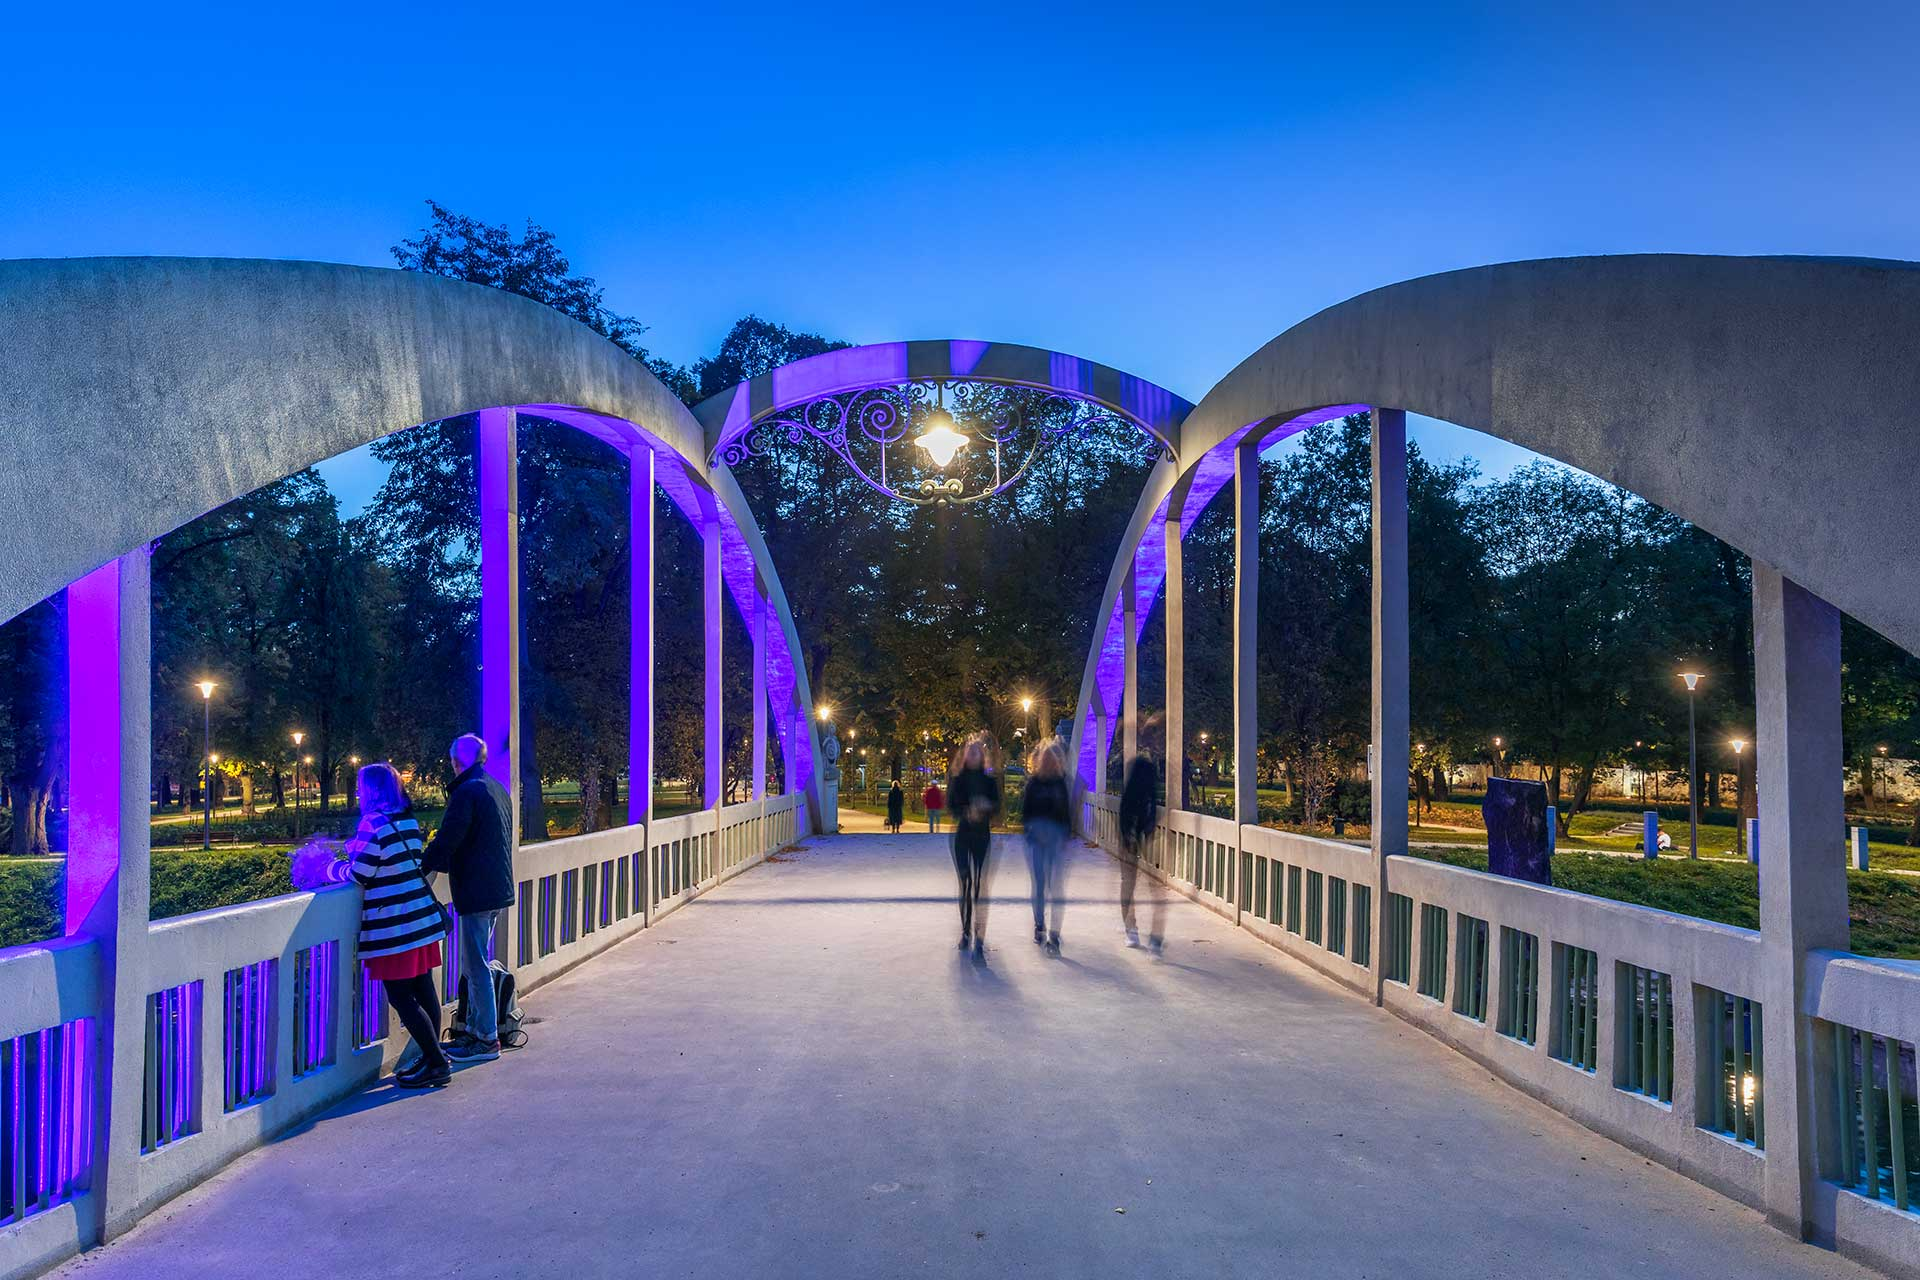 SCULPdot illuminates the bridges in Central Park in Swidnica to create a strong identity